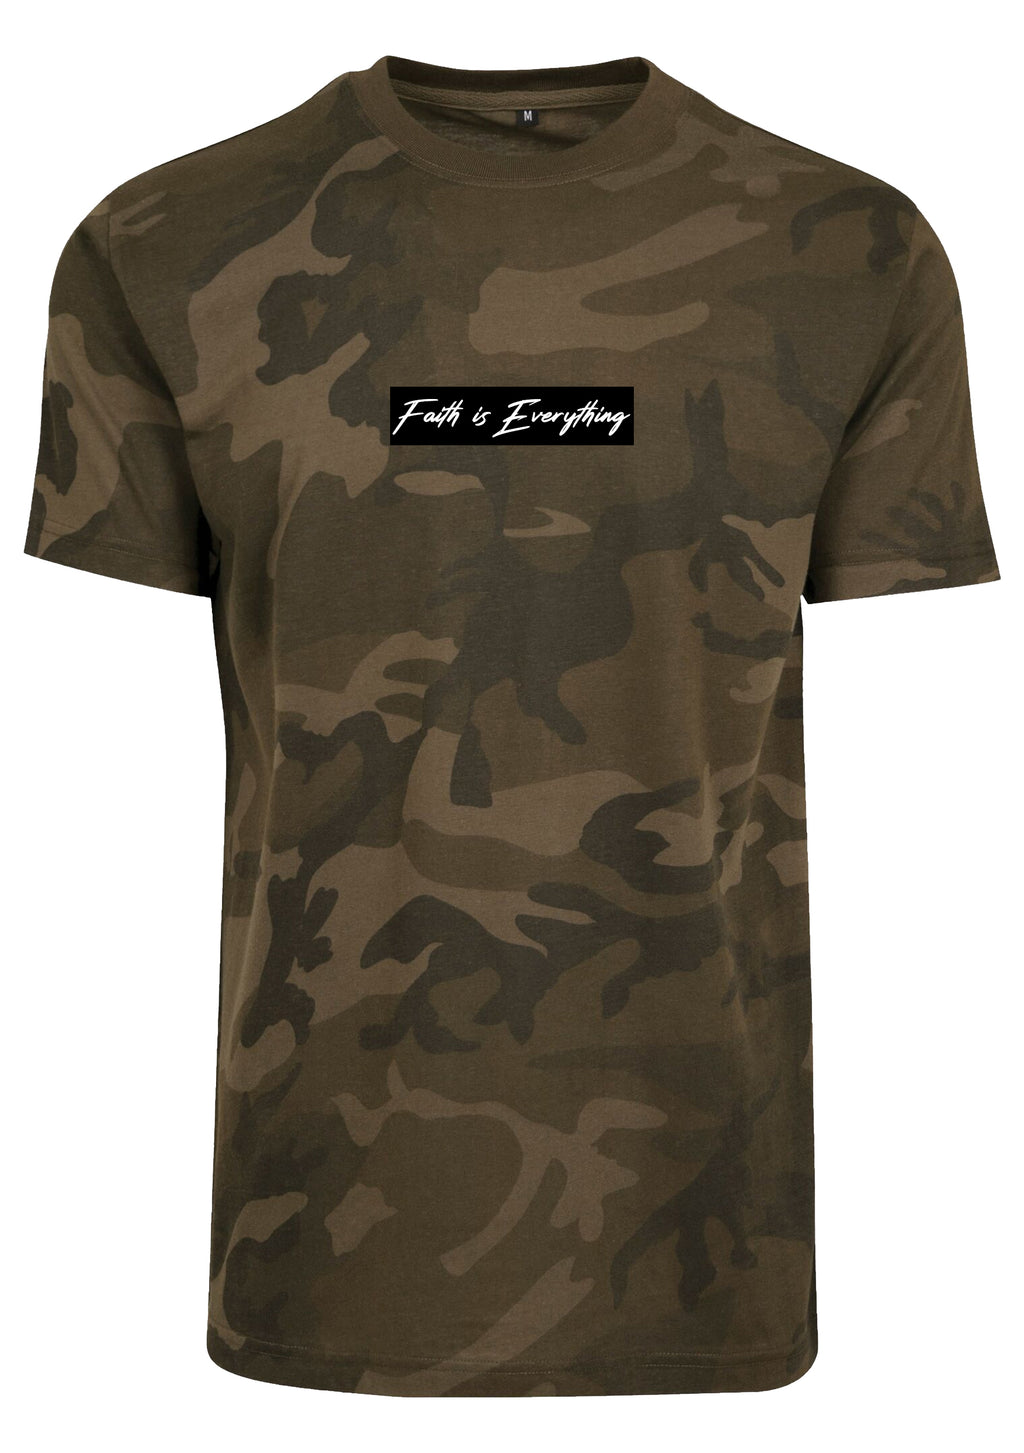 FAITH IS EVERYTHING UNISEX CAMO ROUND NECK T-SHIRT (BLACK)